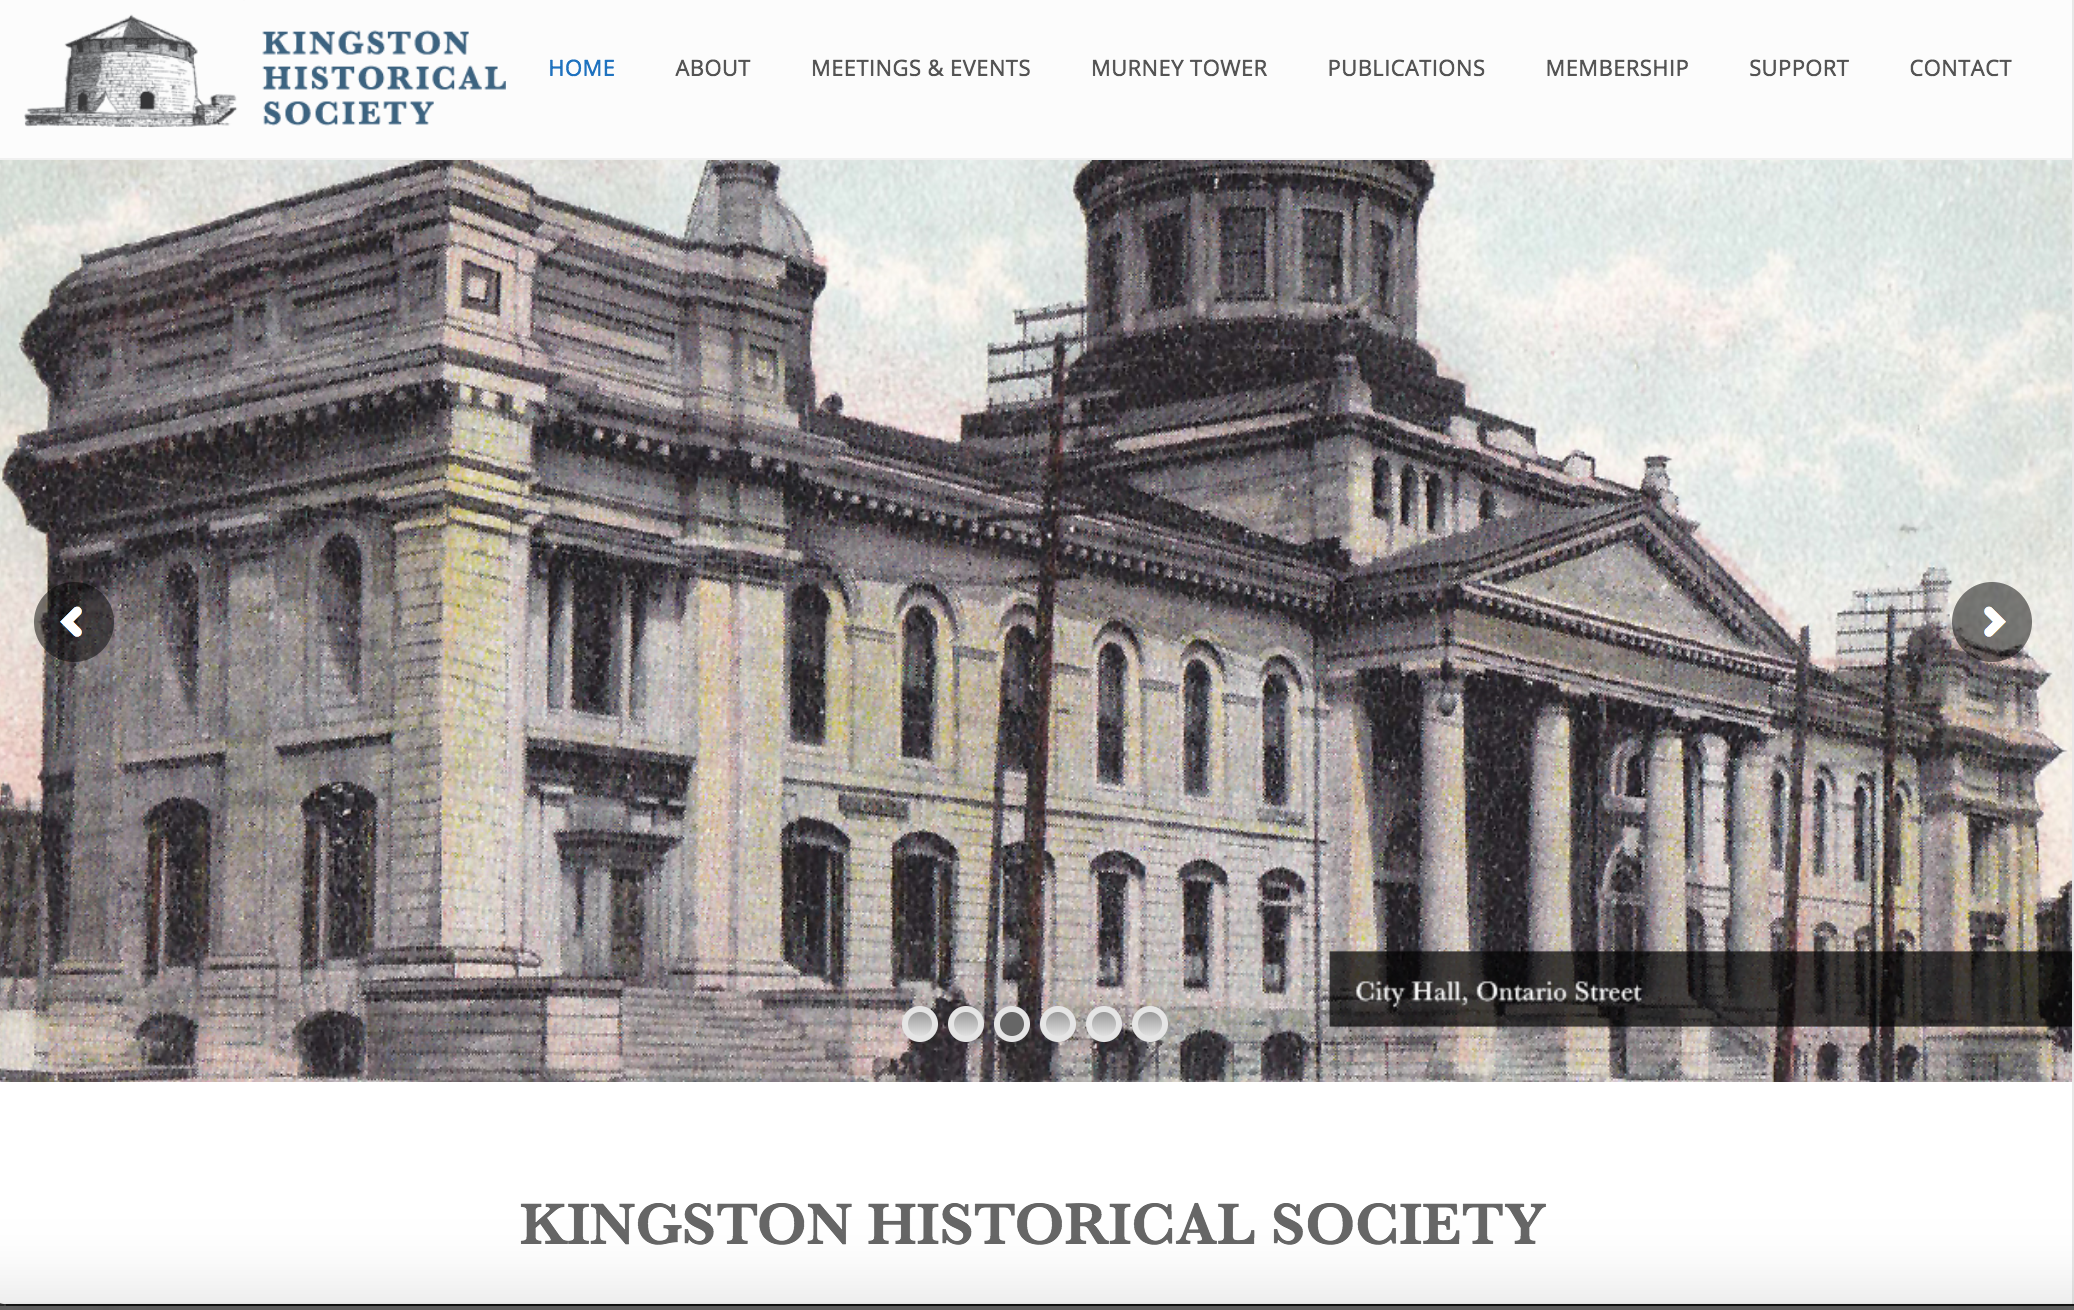 Kingston Historical Society Logo and Website